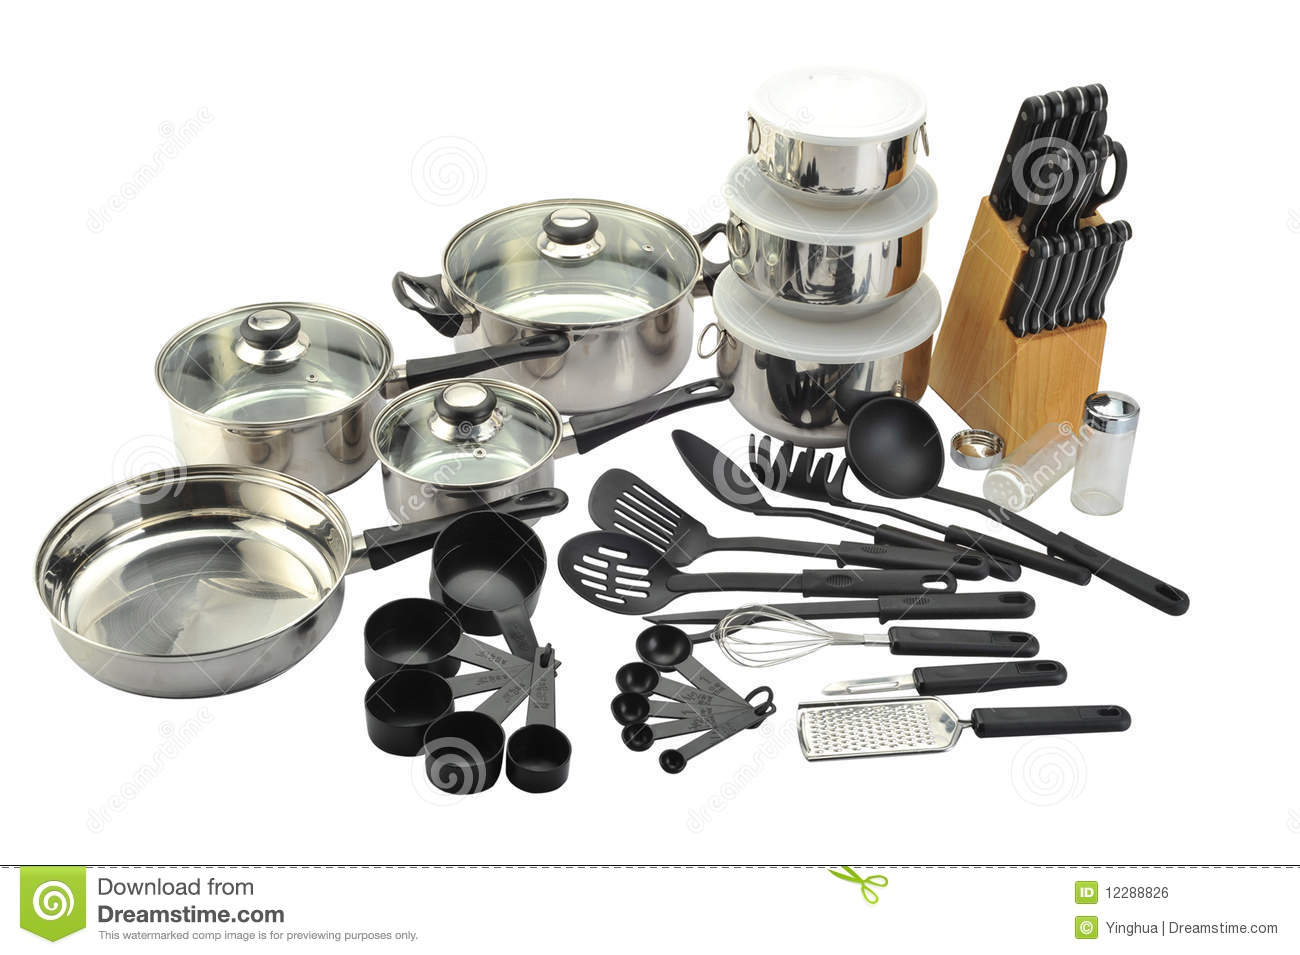 Kitchenware Royalty Free Stock Image - Image: 12288826